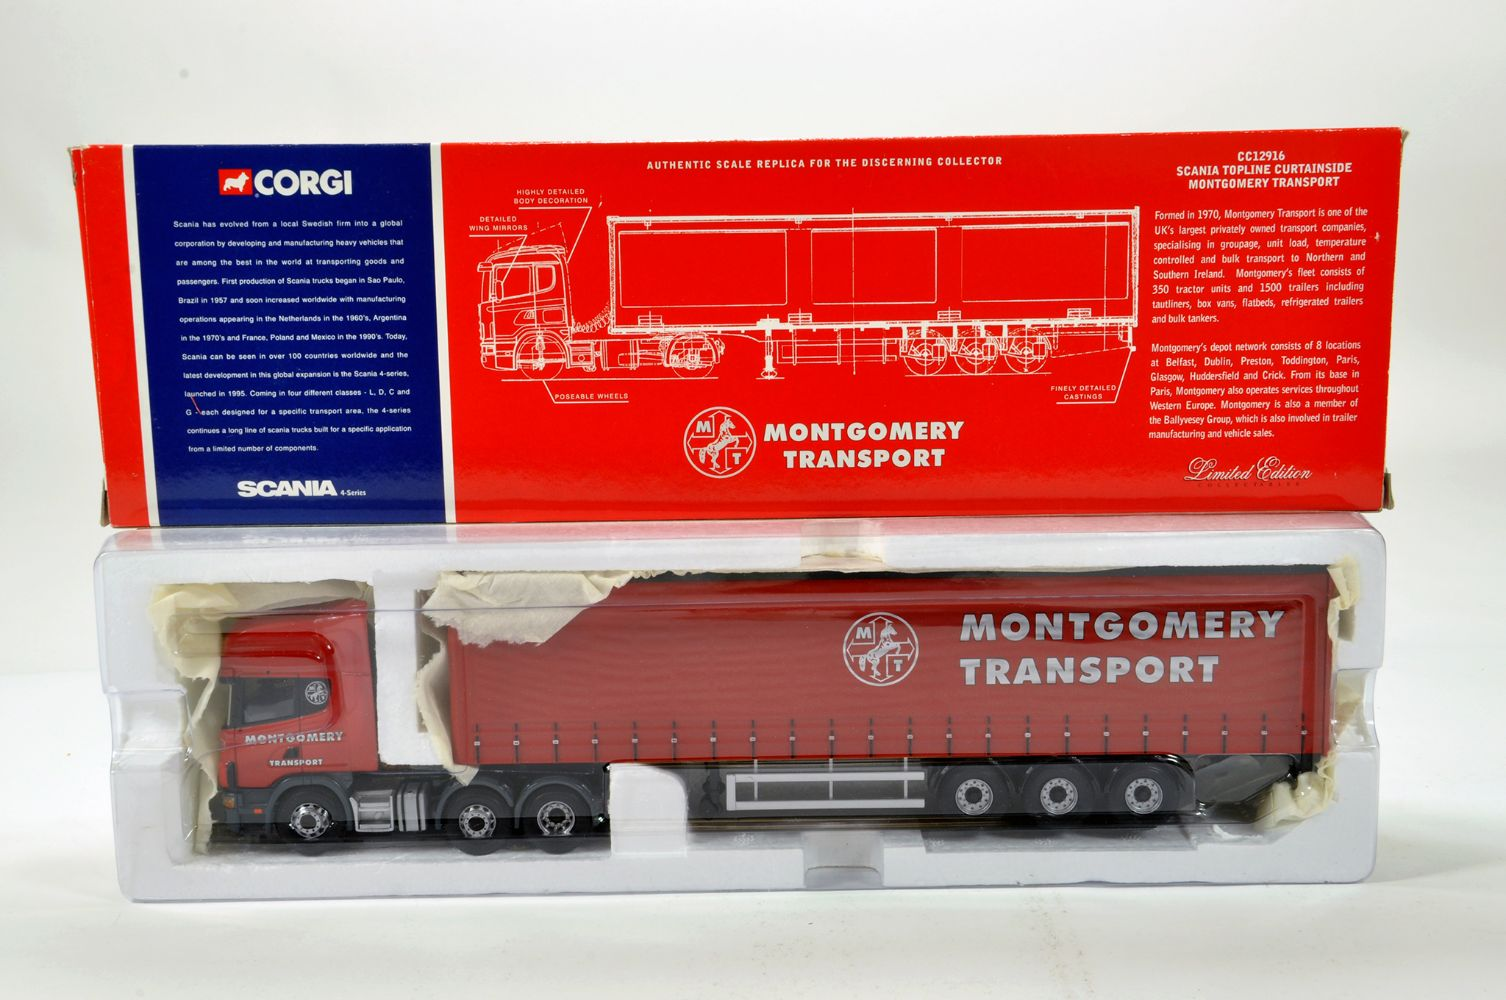 Christmas Specialist Toys, Models & Collectables - Three Day Auction - Over 2000 Lots